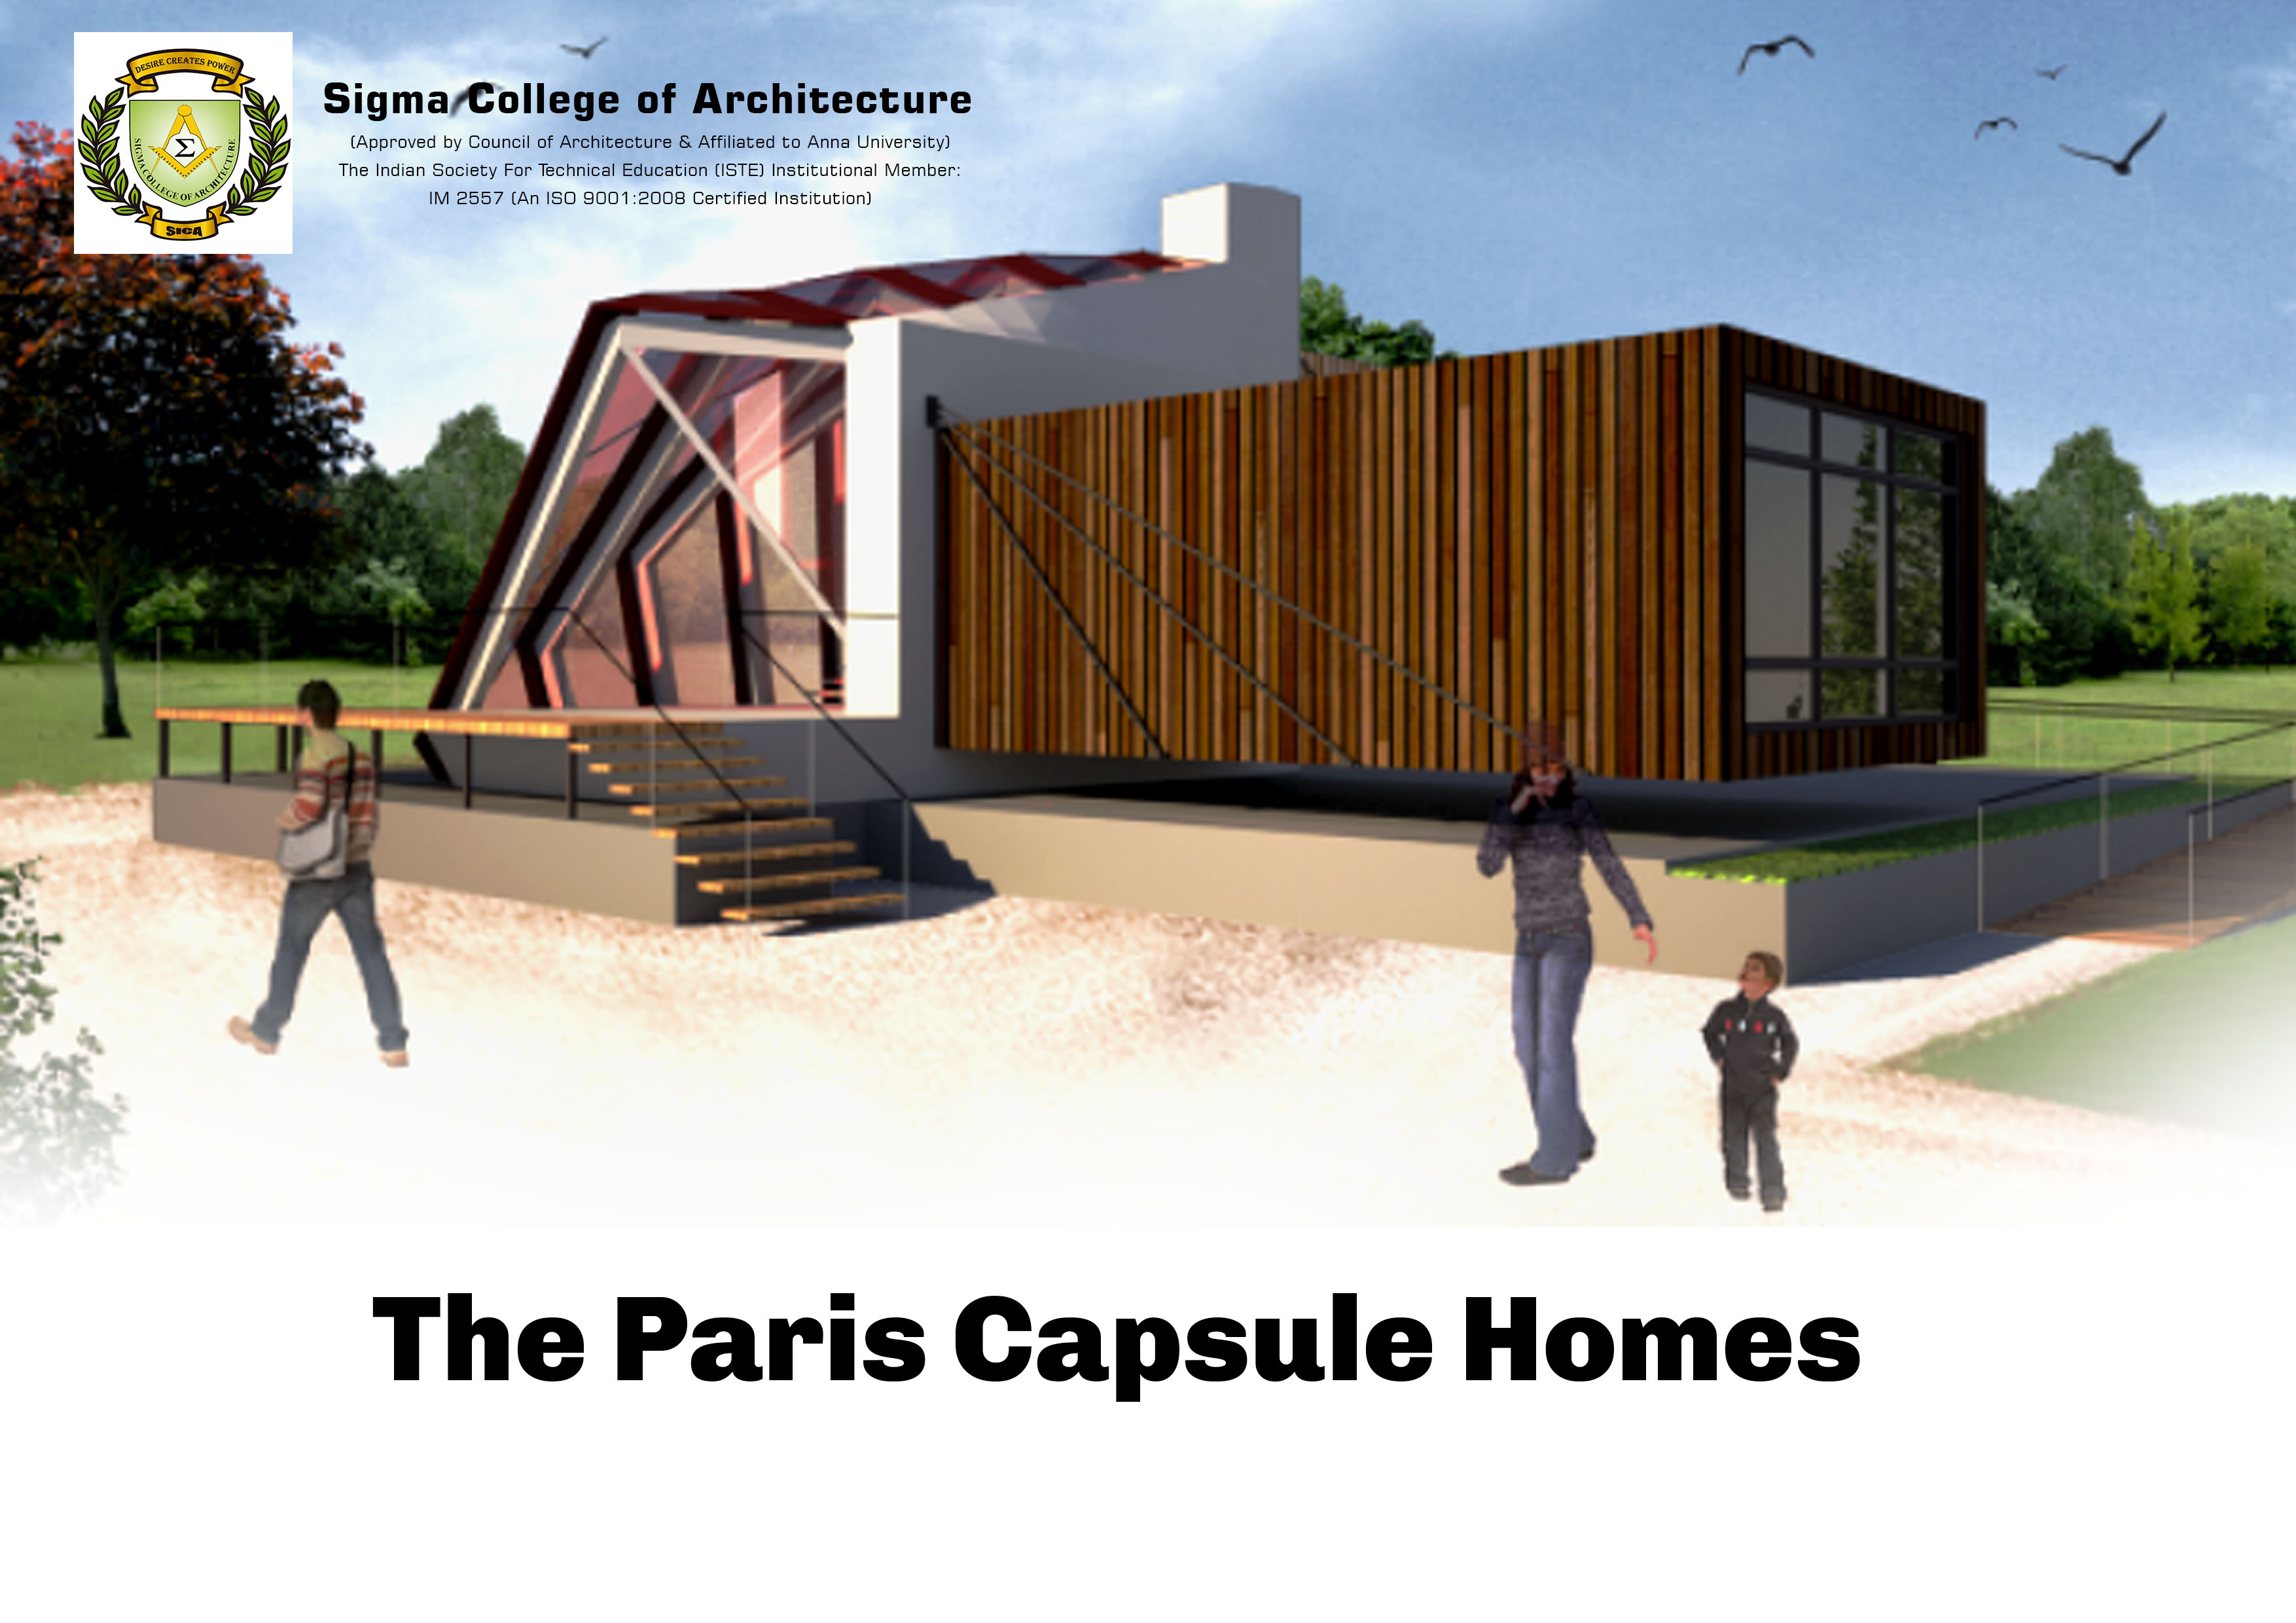 The Paris Capsule Homes